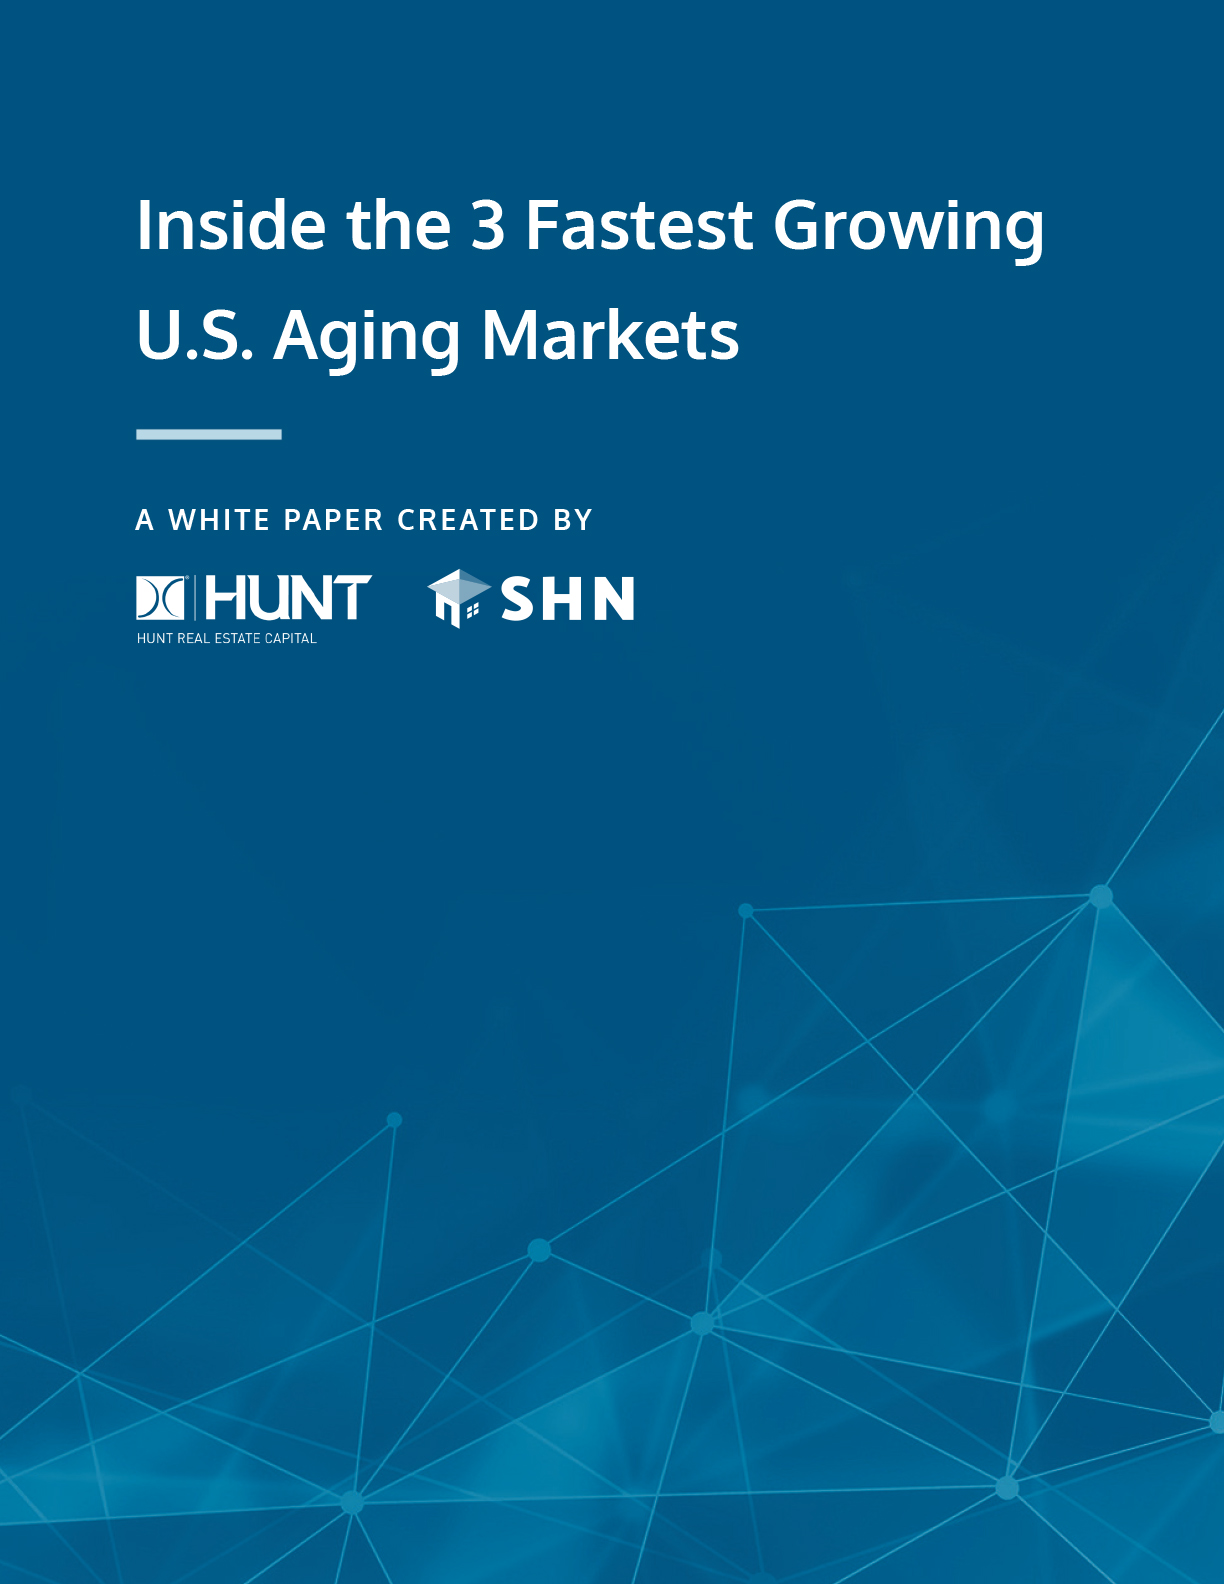 Inside the 3 Fastest Growing U.S. Aging Markets